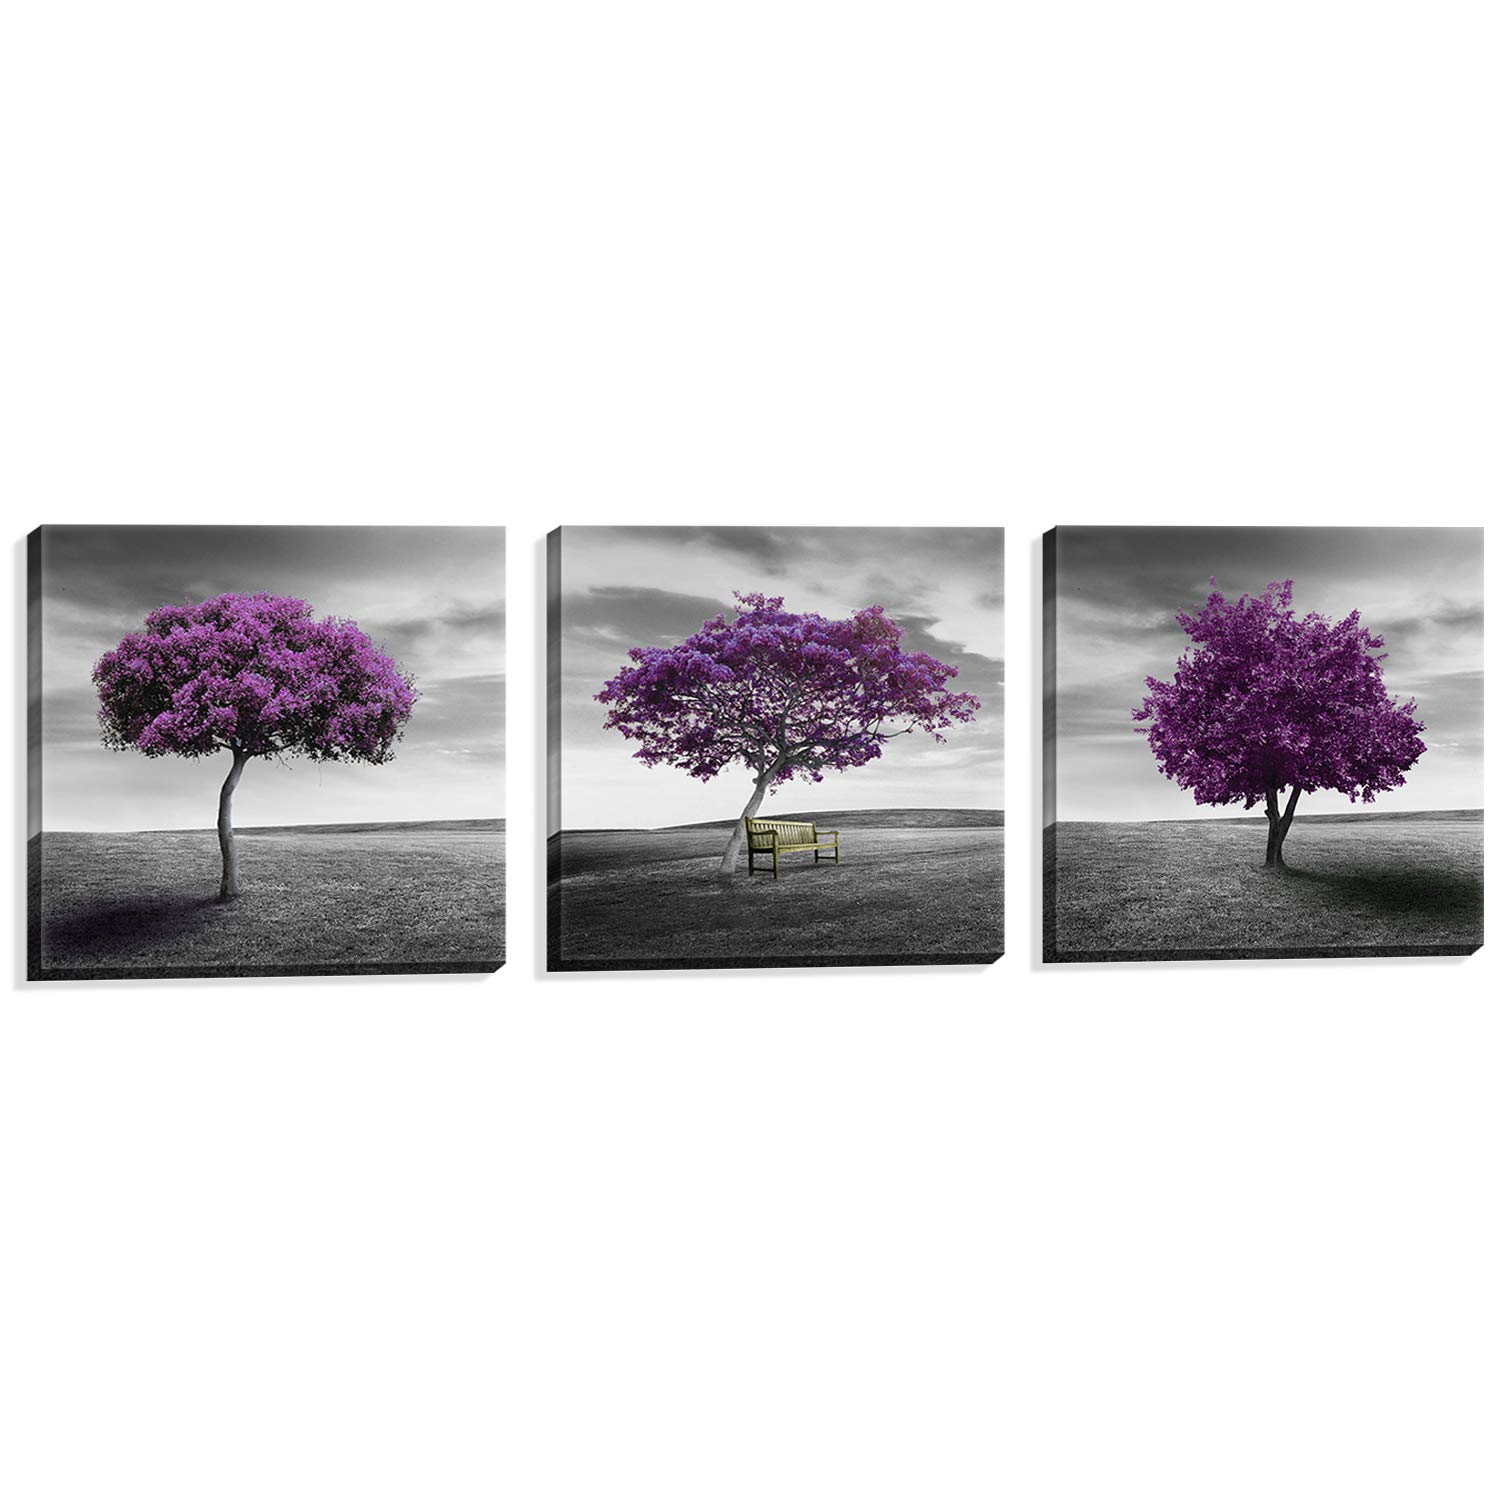 Nuolan Art - Canvas Print 3 Panels PURPLE TREES Modern Landscape Framed Canvas Wall Art -P3L3030-003